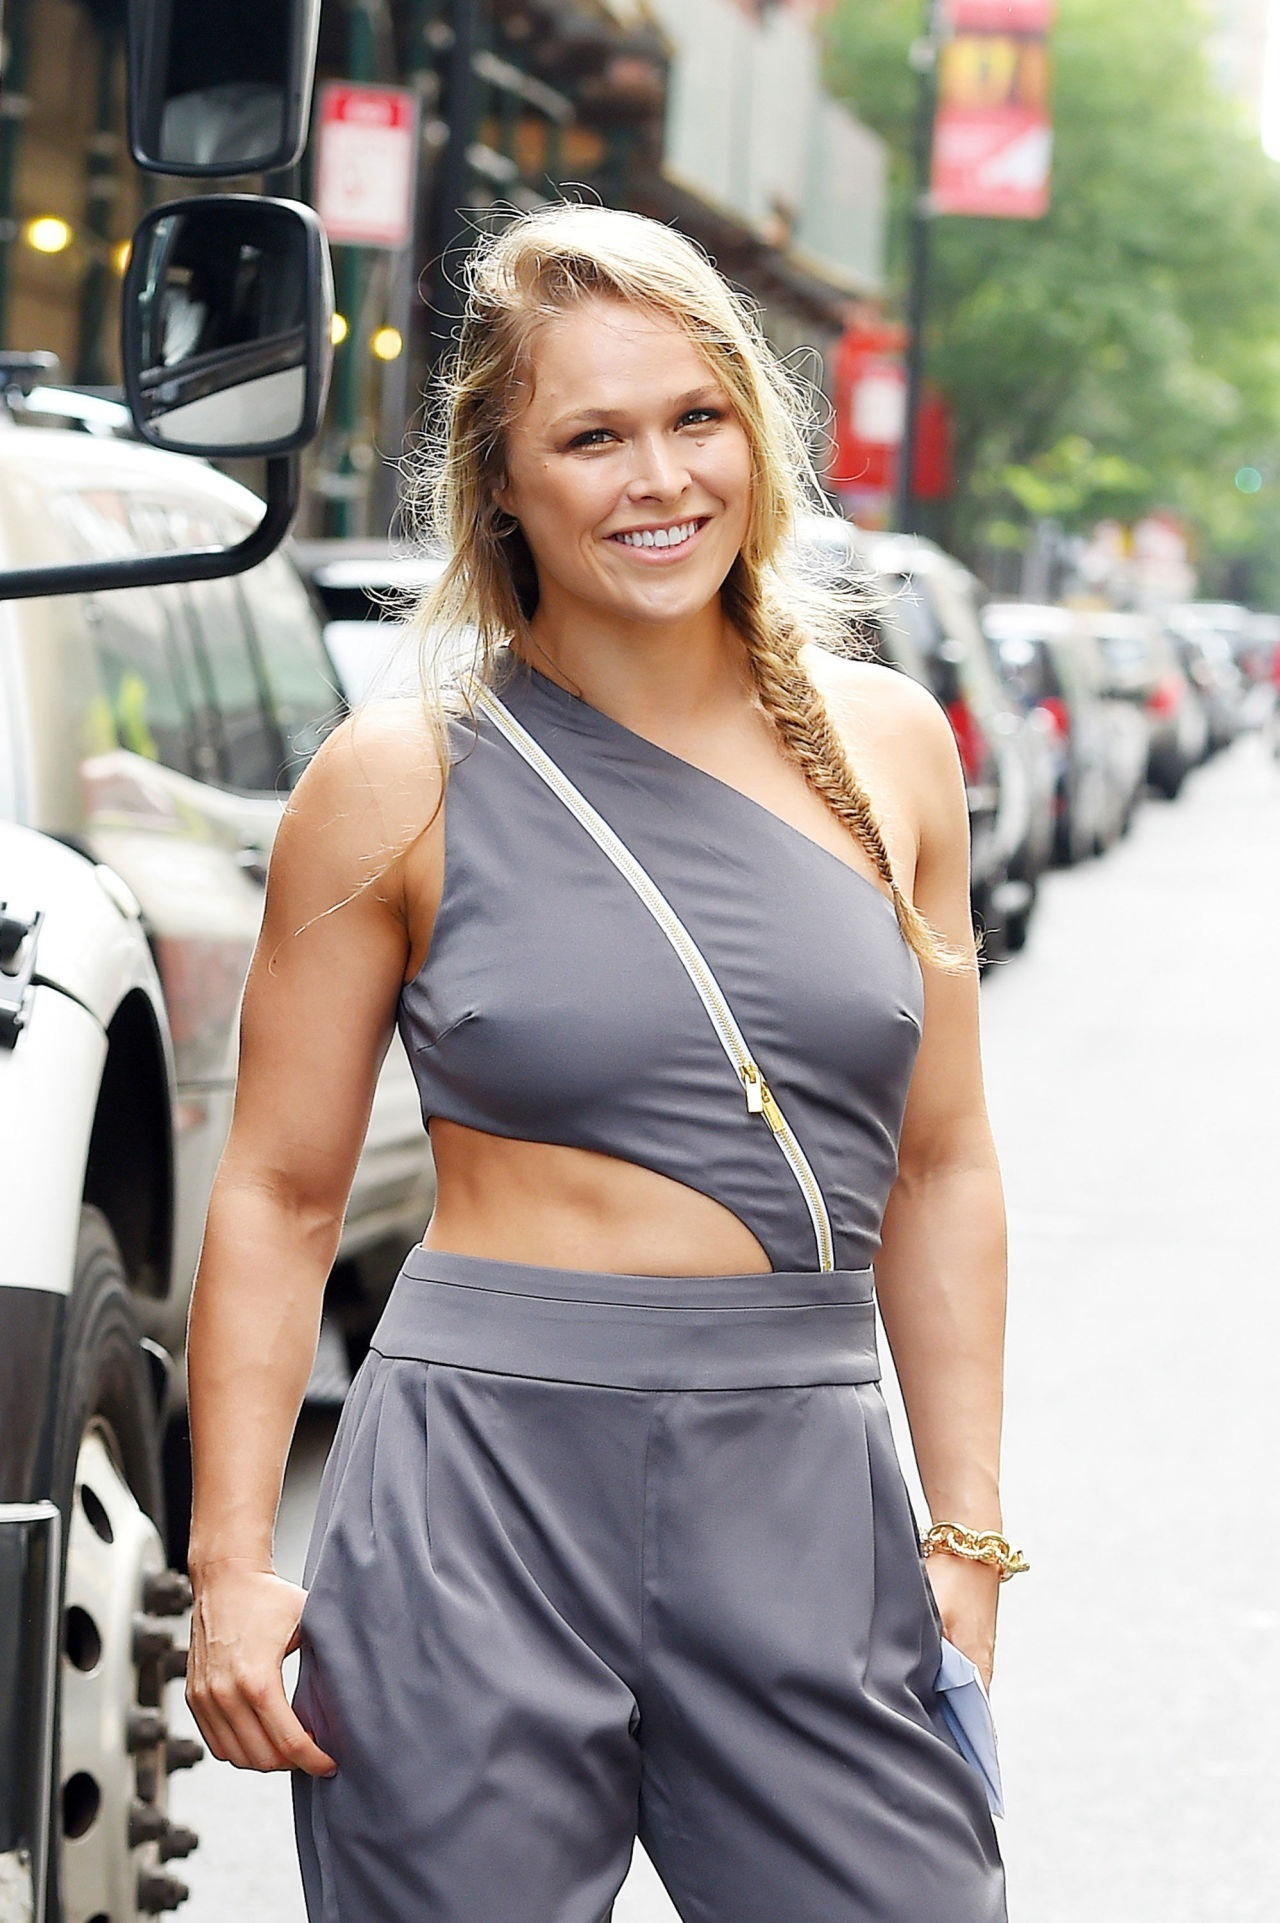 Gallery Ronda Rousey Ronda Rousey